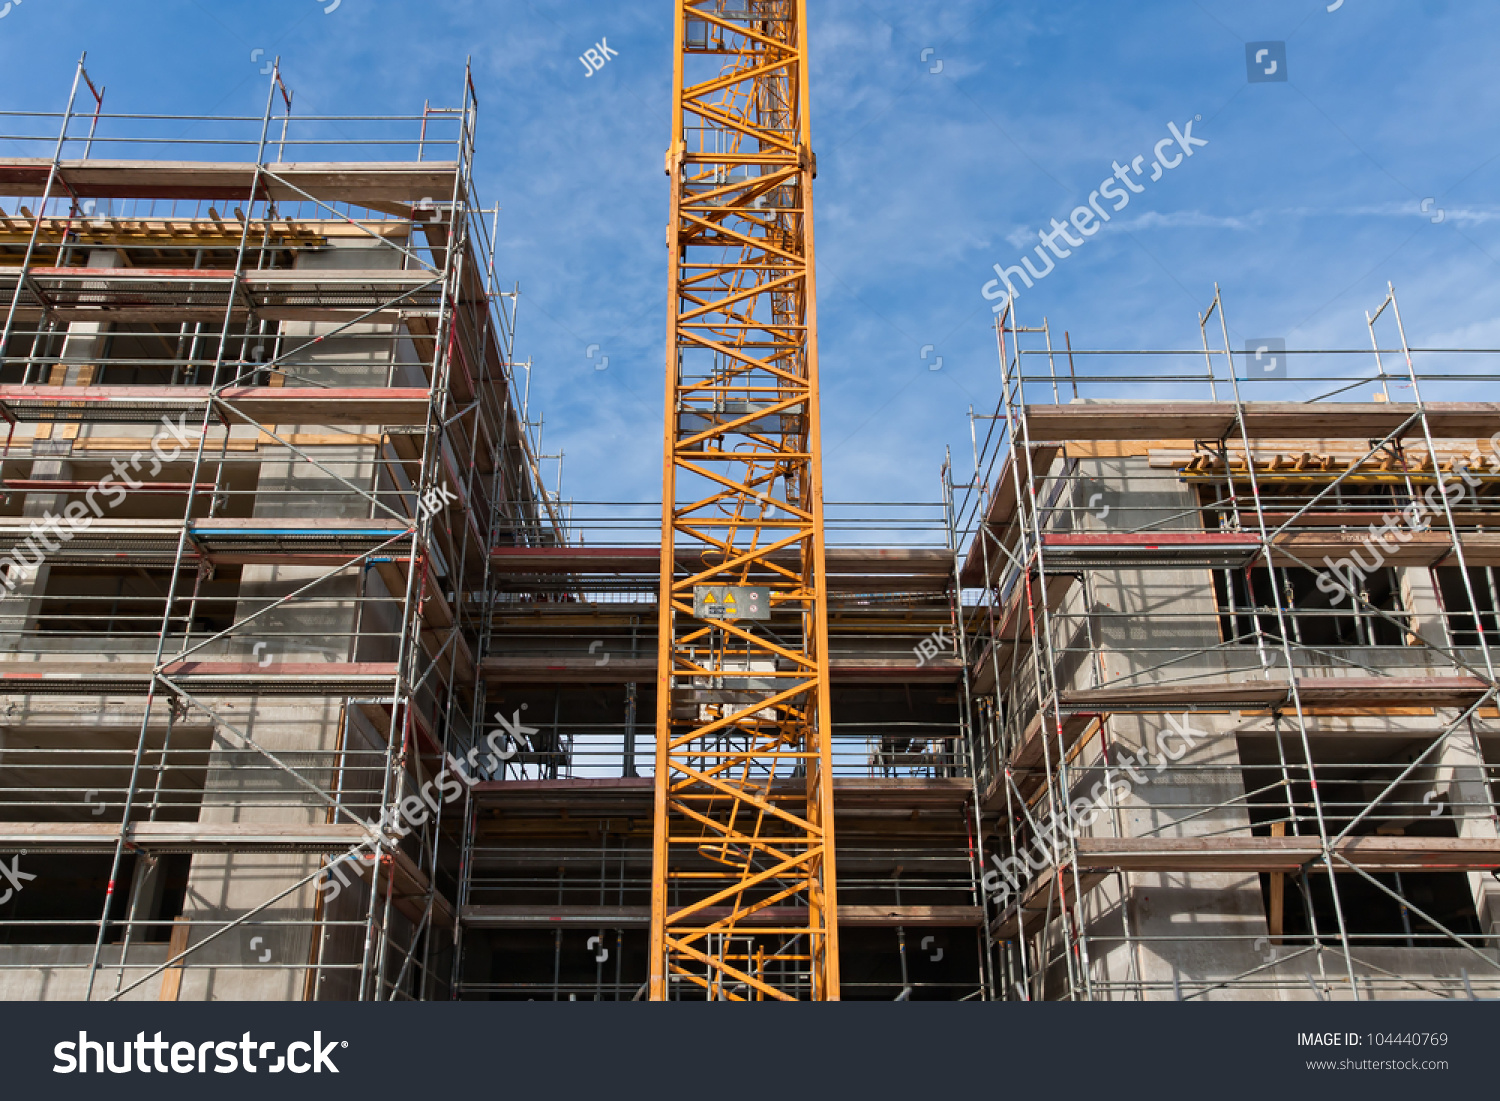 Large Construction Site Scaffolding Building Yellow Stock Photo 104440769 Shutterstock